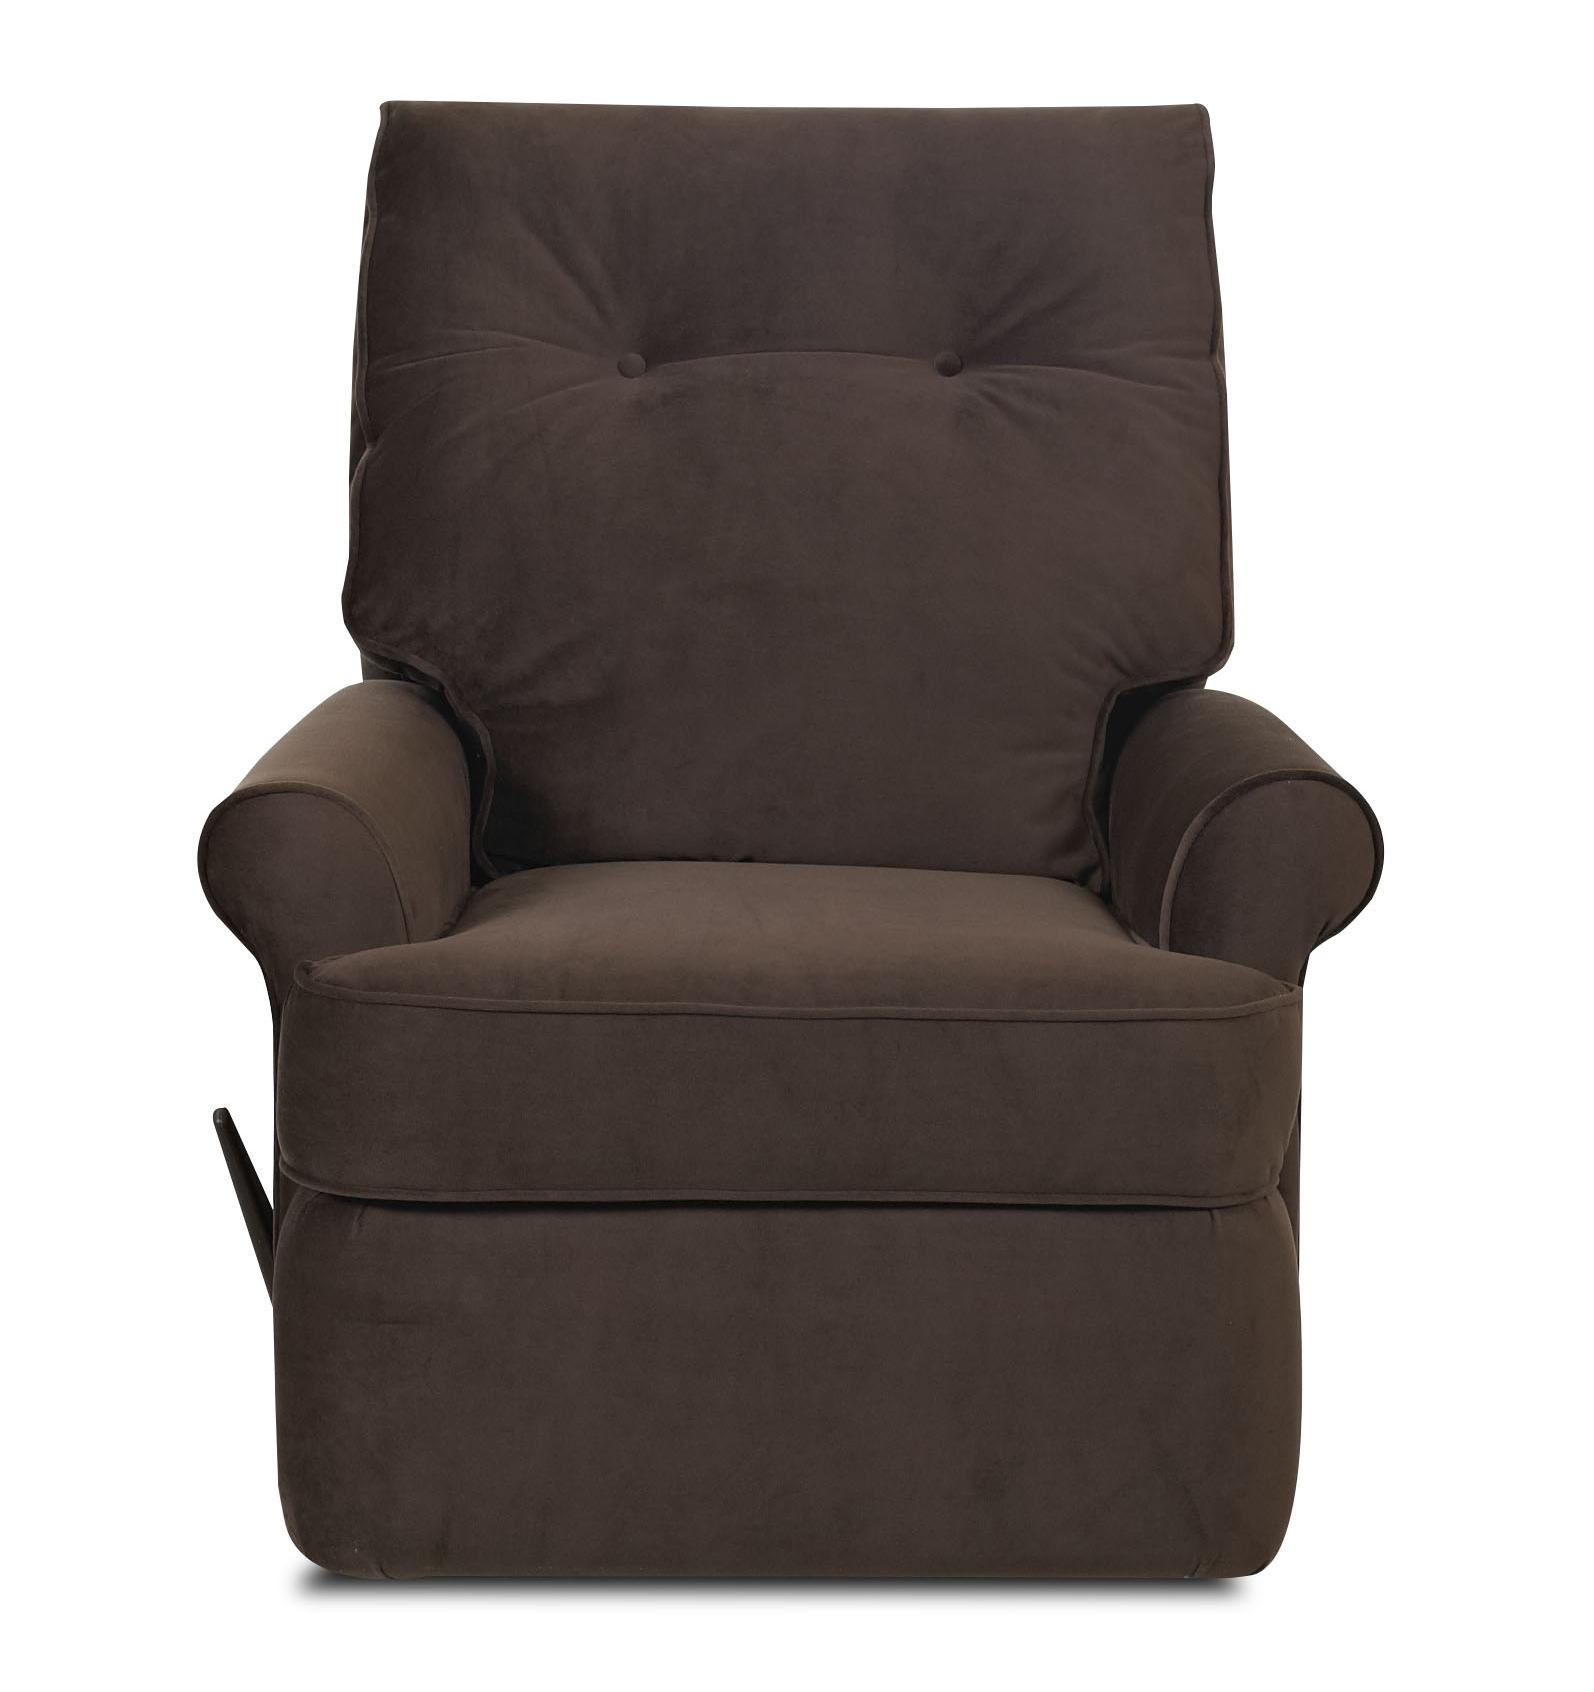 Reclining Chairs Clearwater Transitional Power Reclining Chair By Klaussner